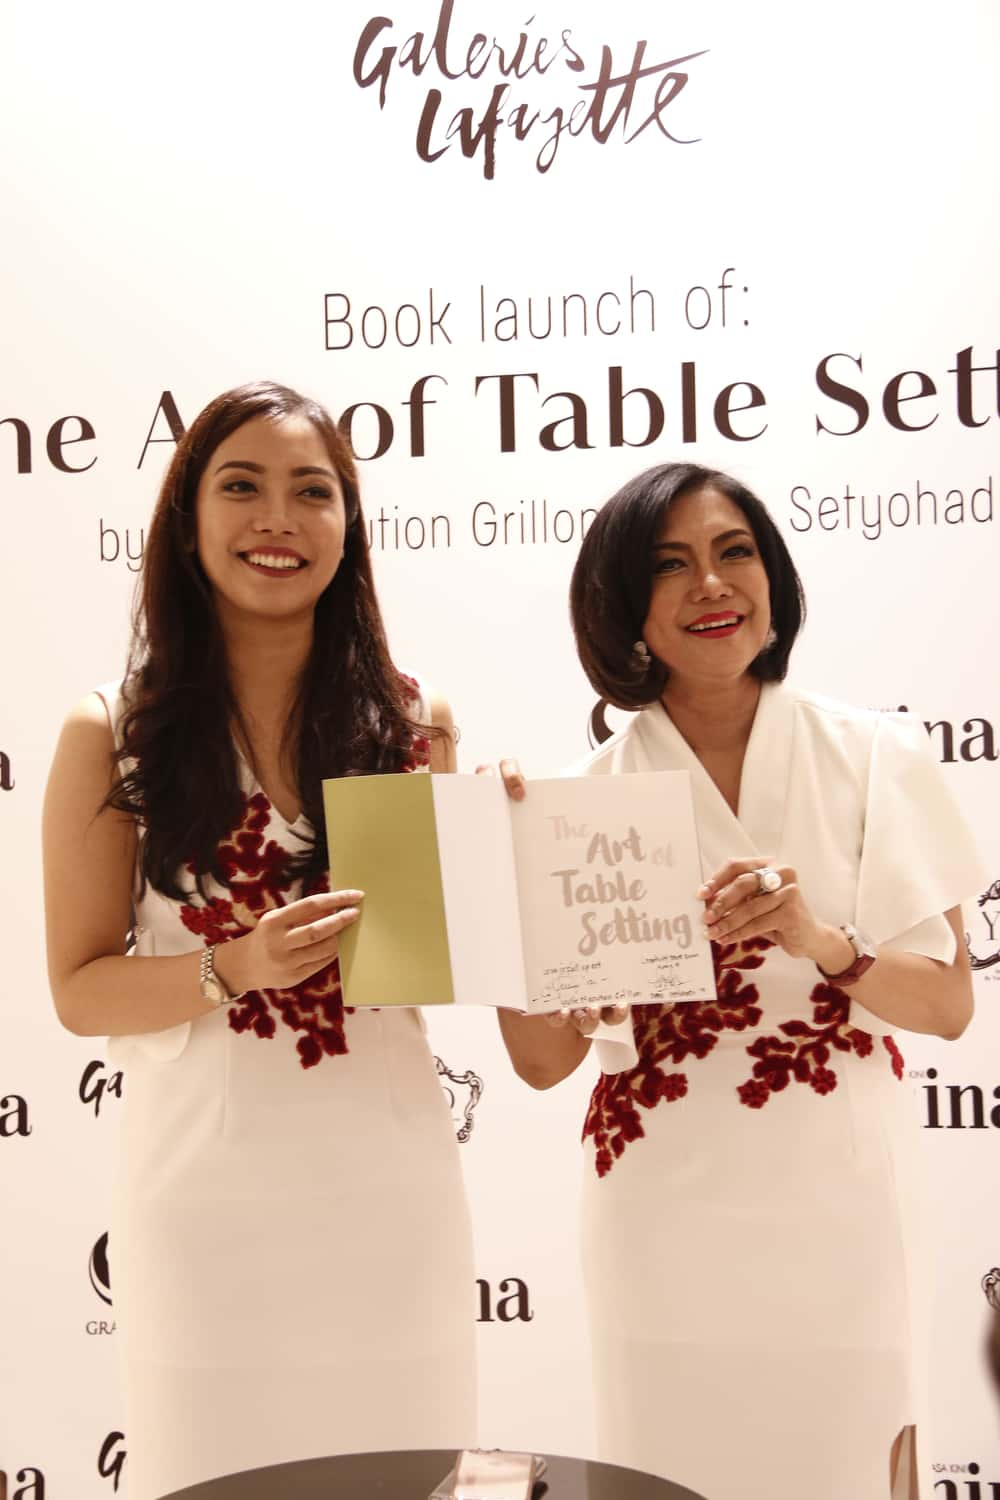 Meriahnya Peluncuran Buku The Art of Table Setting